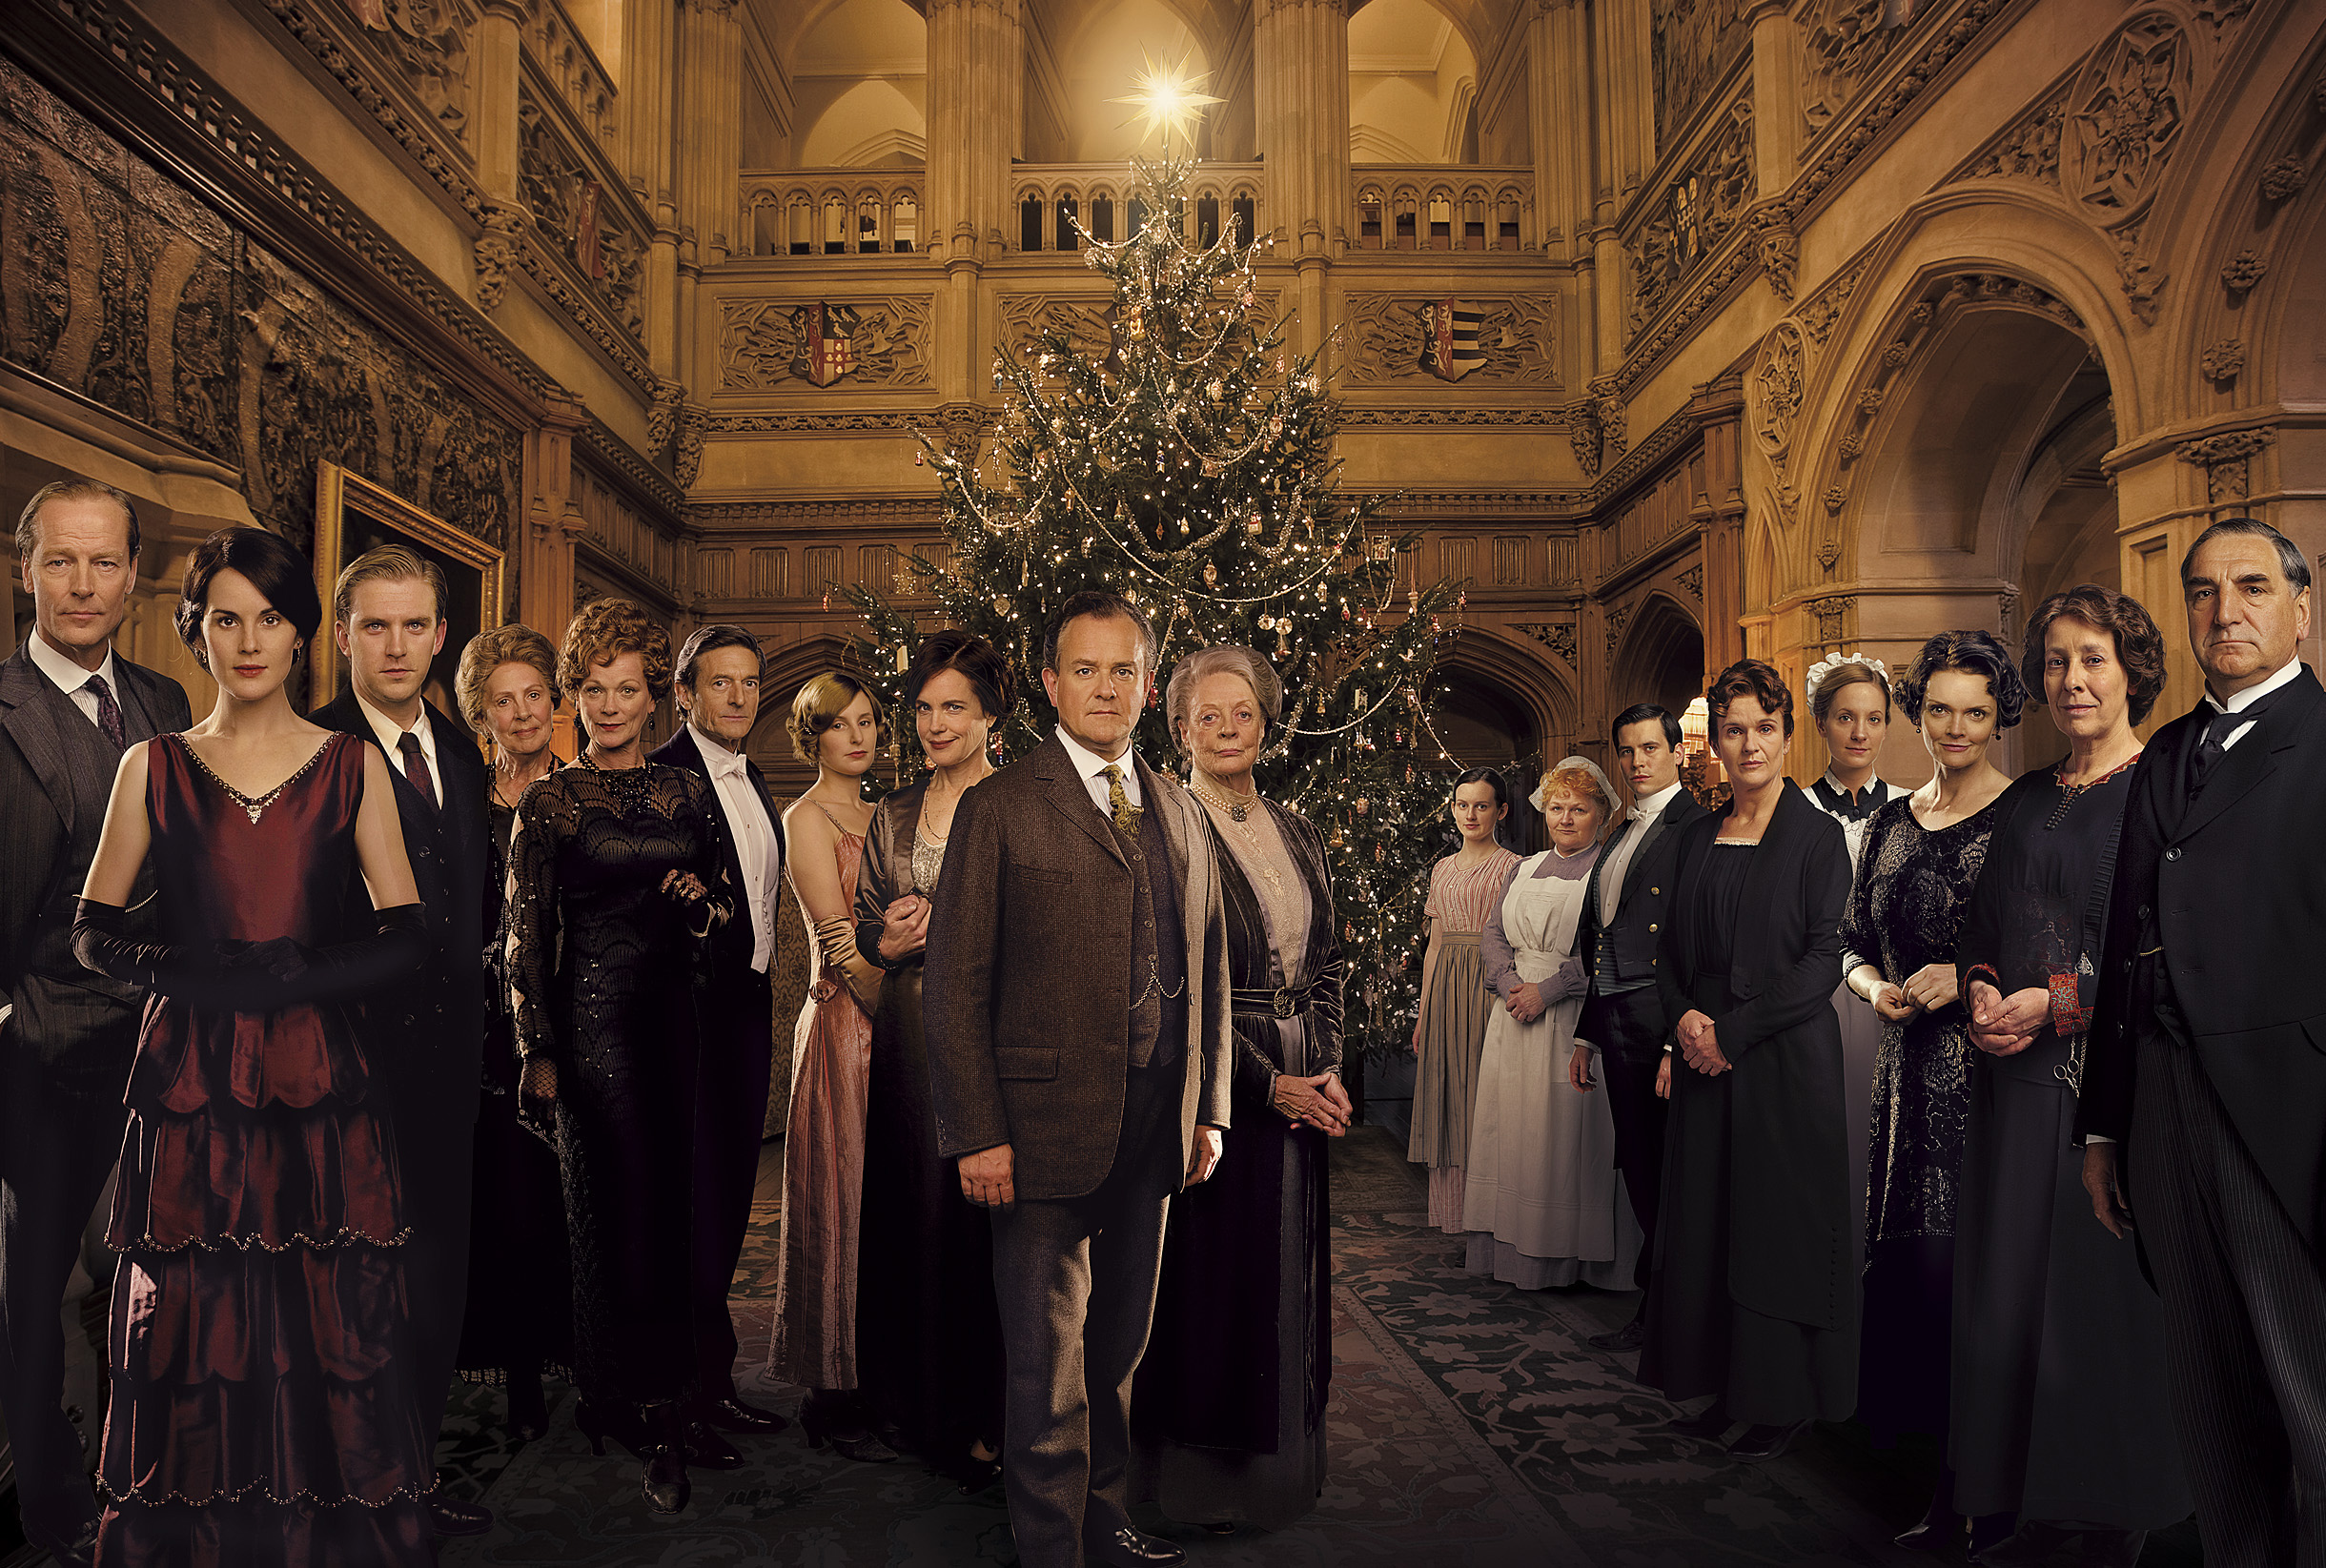 Downton Abbey wallpaper 8